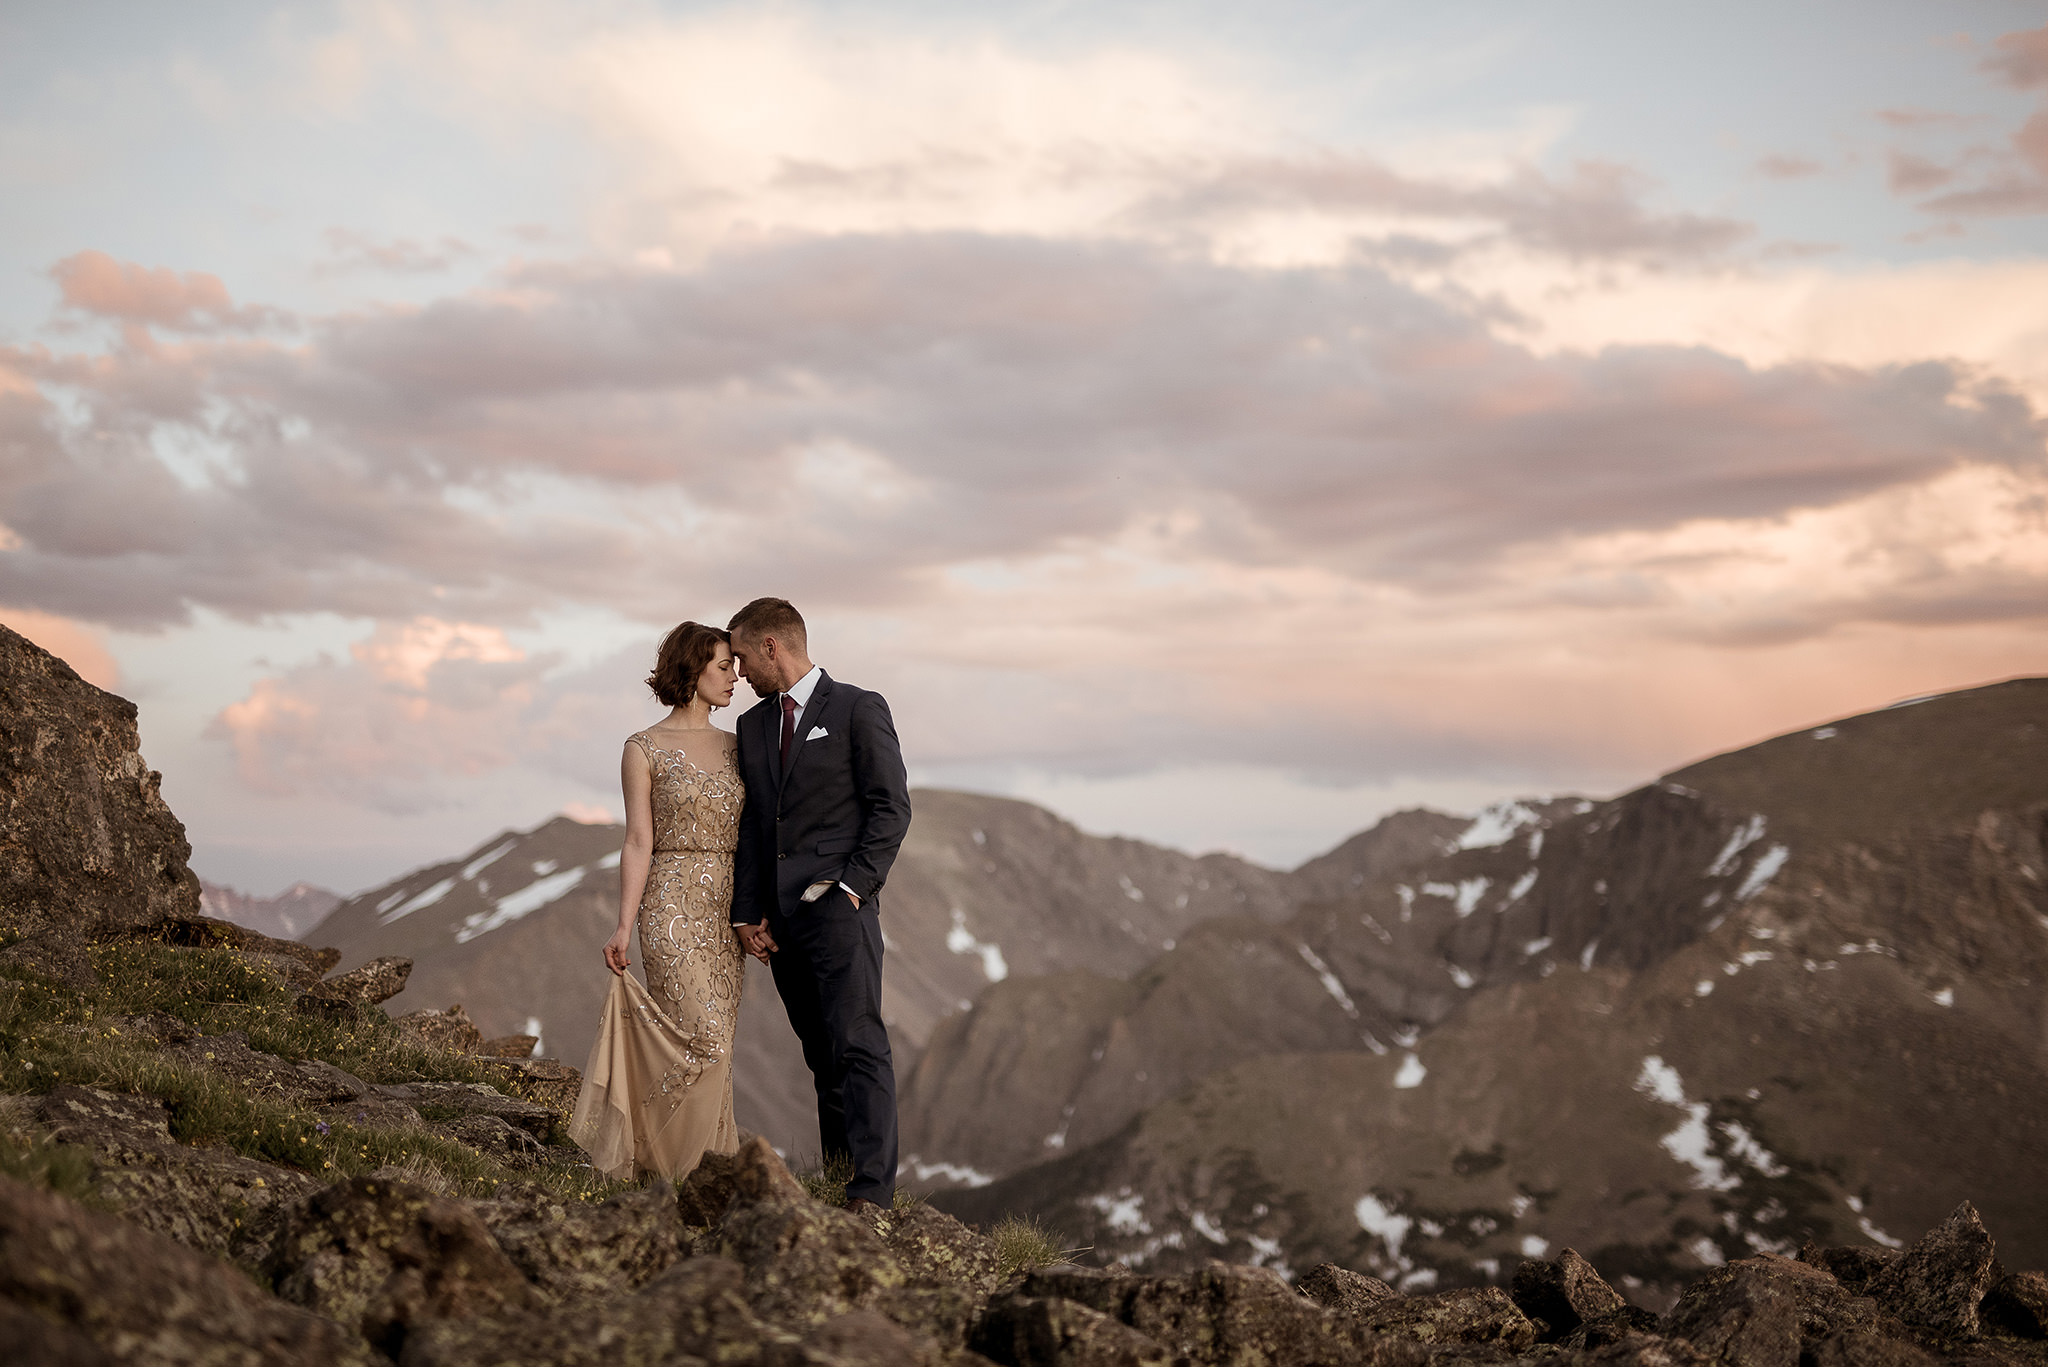 Rocky-Mountain-National-park-elopement-engagement-photography-kate-nick-045.jpg